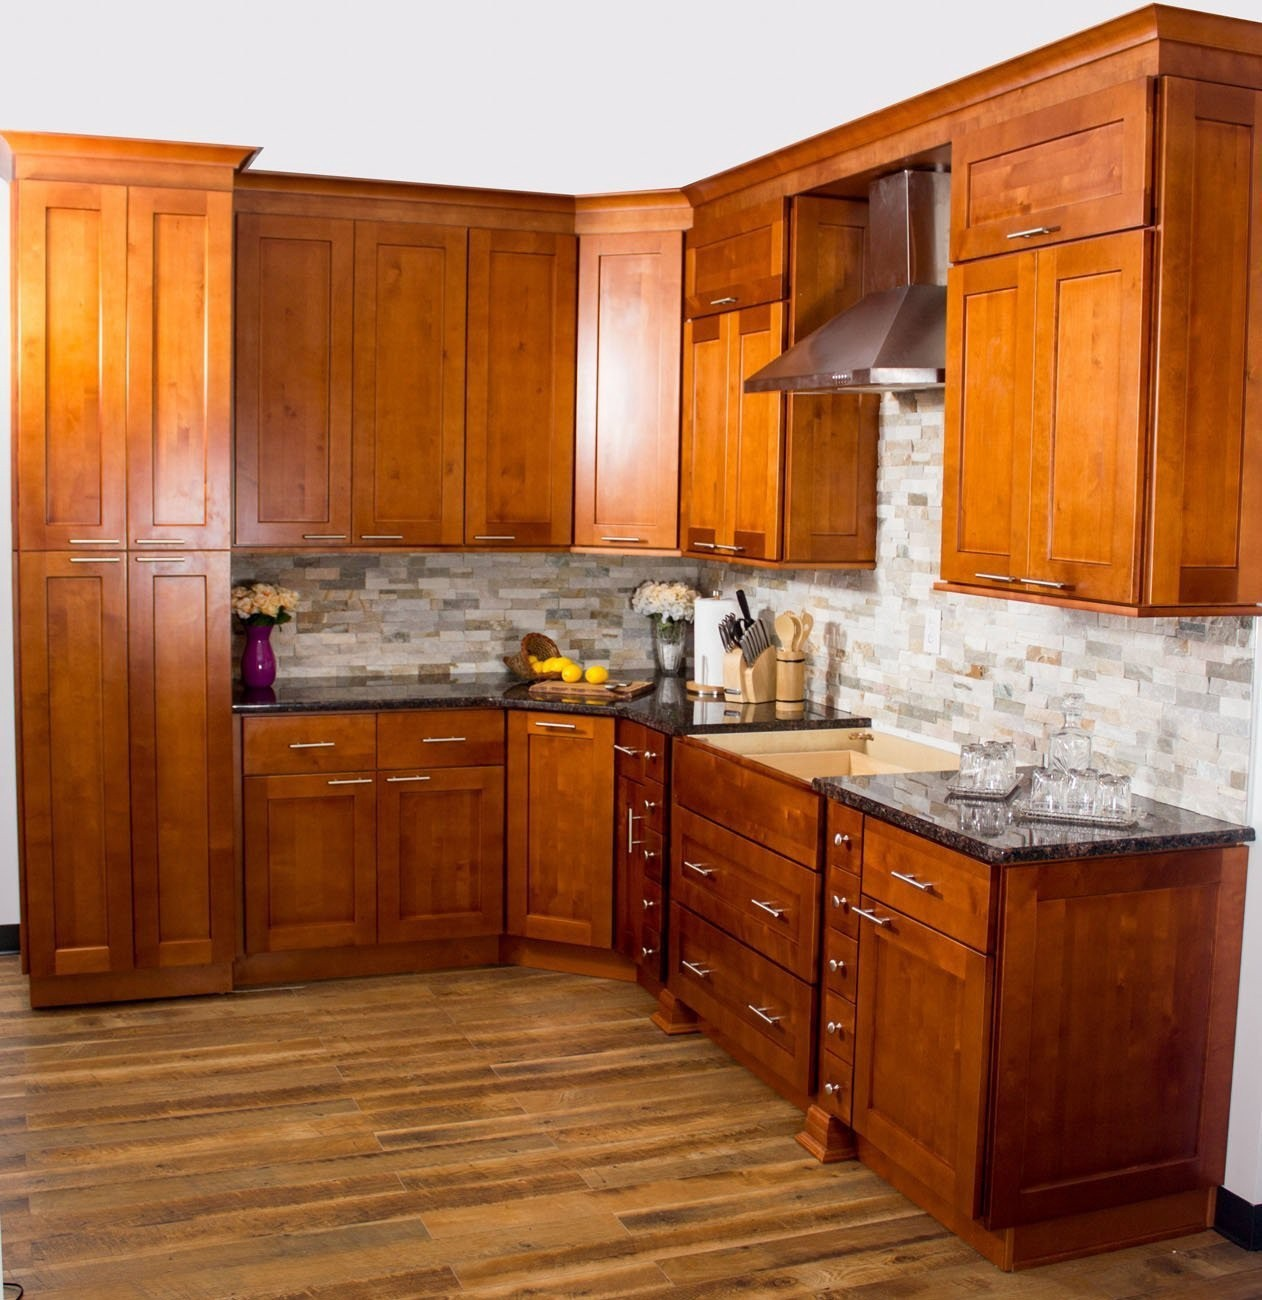 These Toffee Shaker Kitchen Cabinets Are Made Of Solid Wood With Panel Full Overlay Doors Modern Come Extension Soft Close